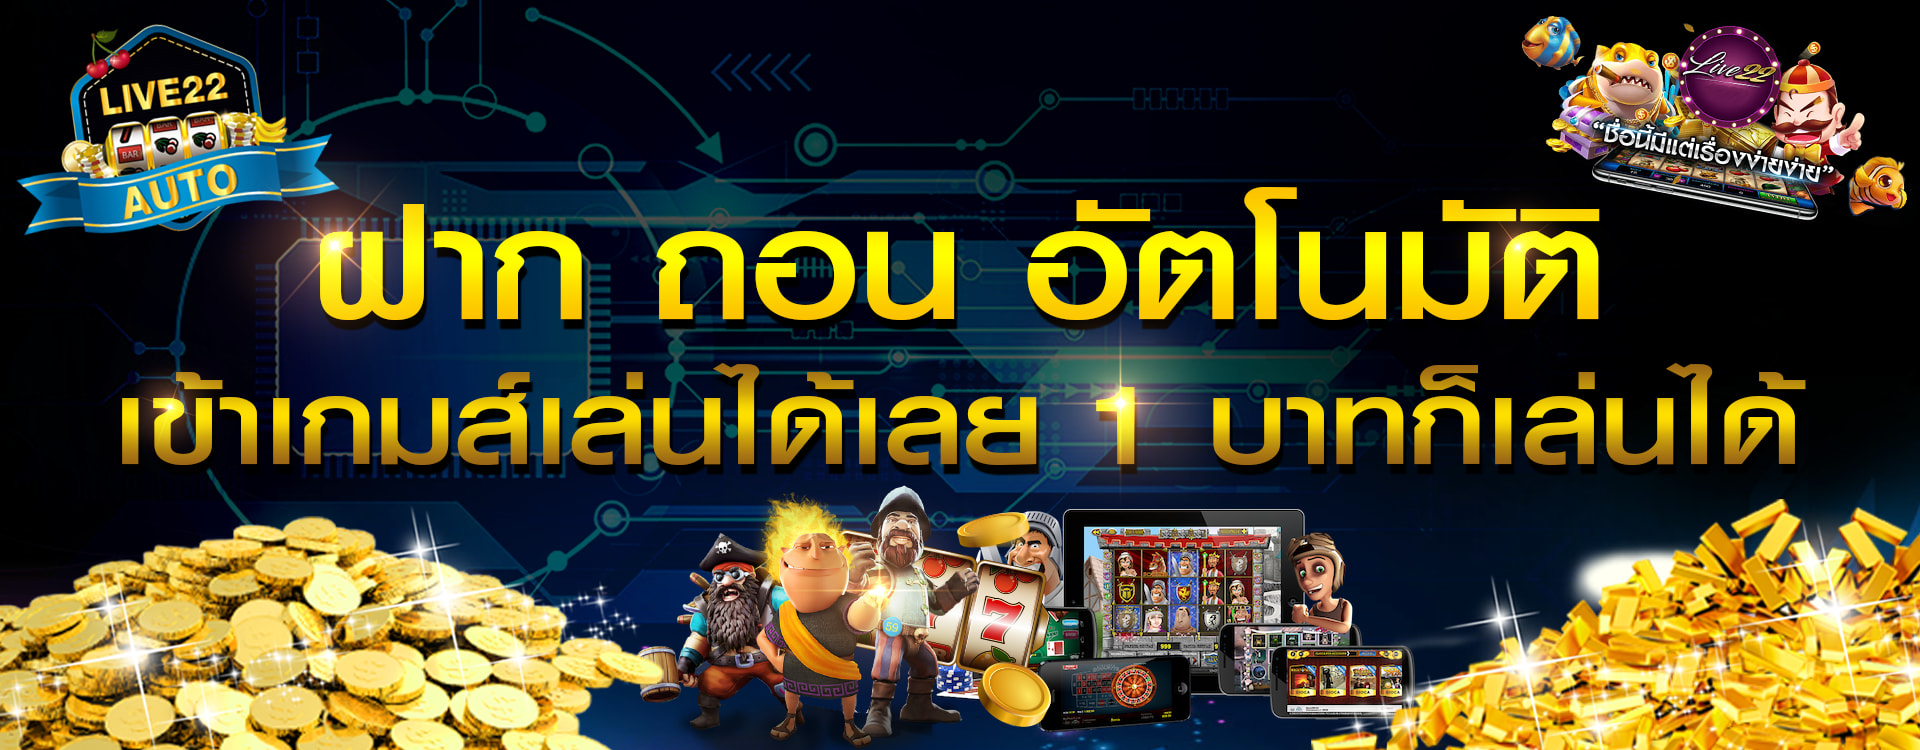 เกม_banner_2_optimized